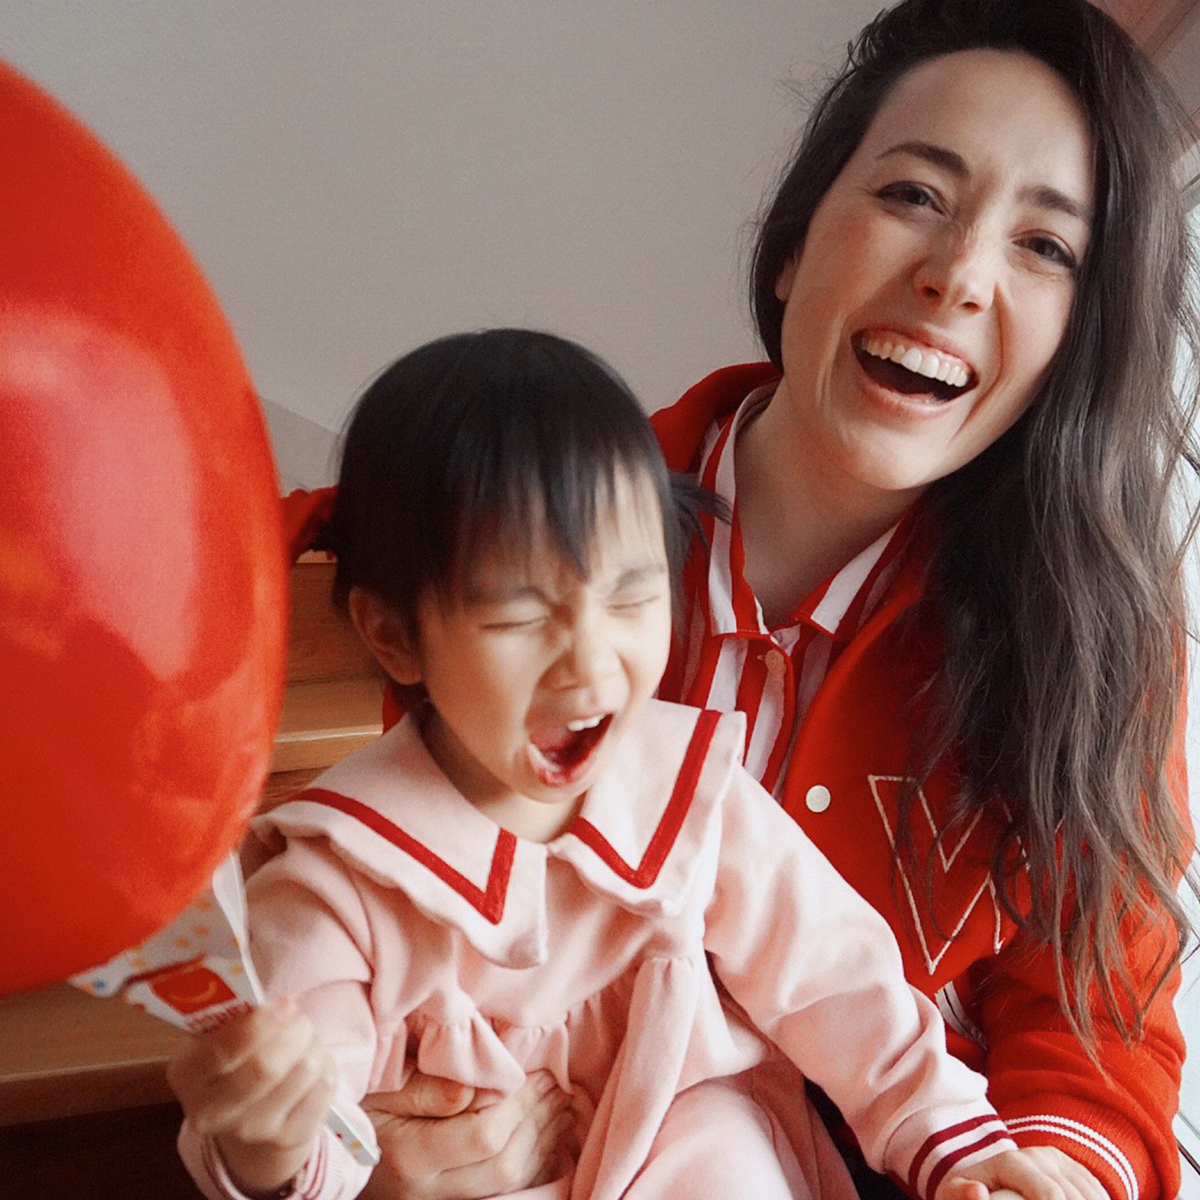 Photo of mother holding daughter who is holding a red baloon